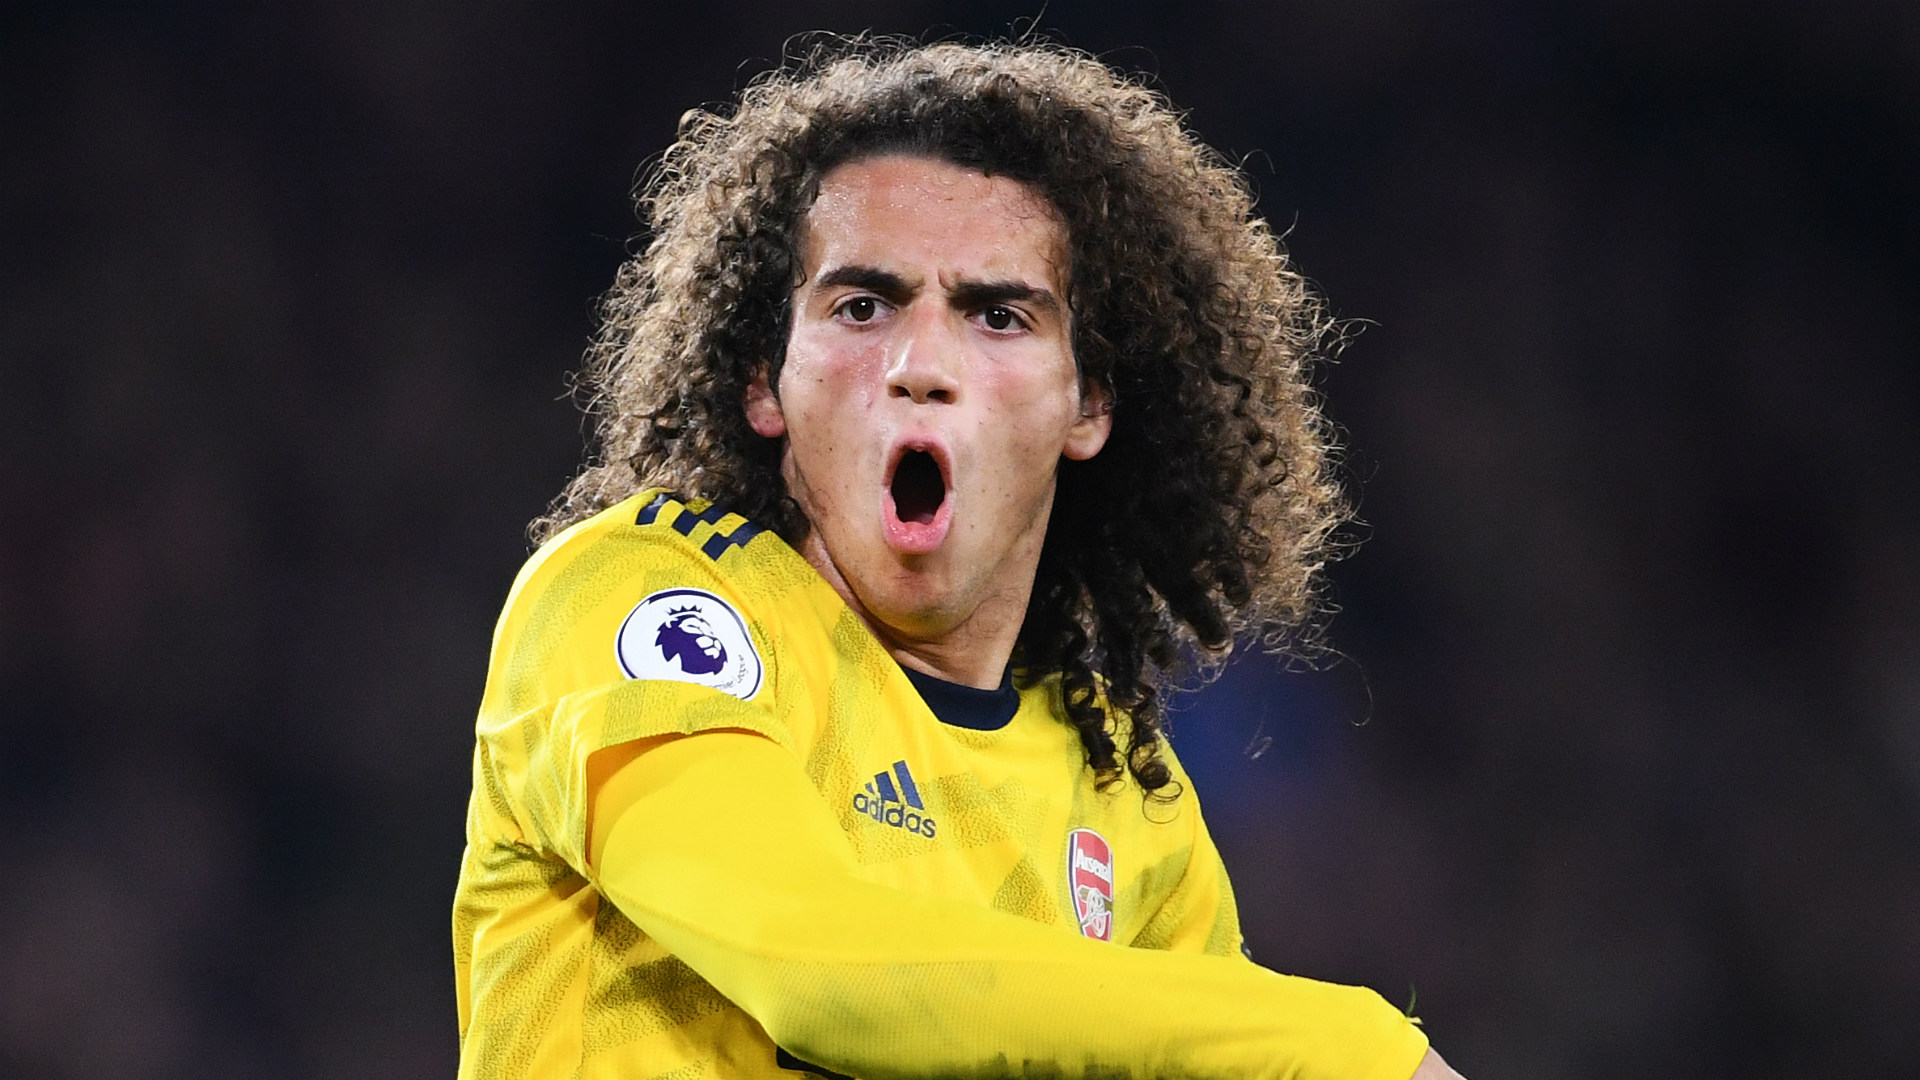 'I just really needed to play' - Guendouzi denies Arsenal career is over after Hertha Berlin loan move